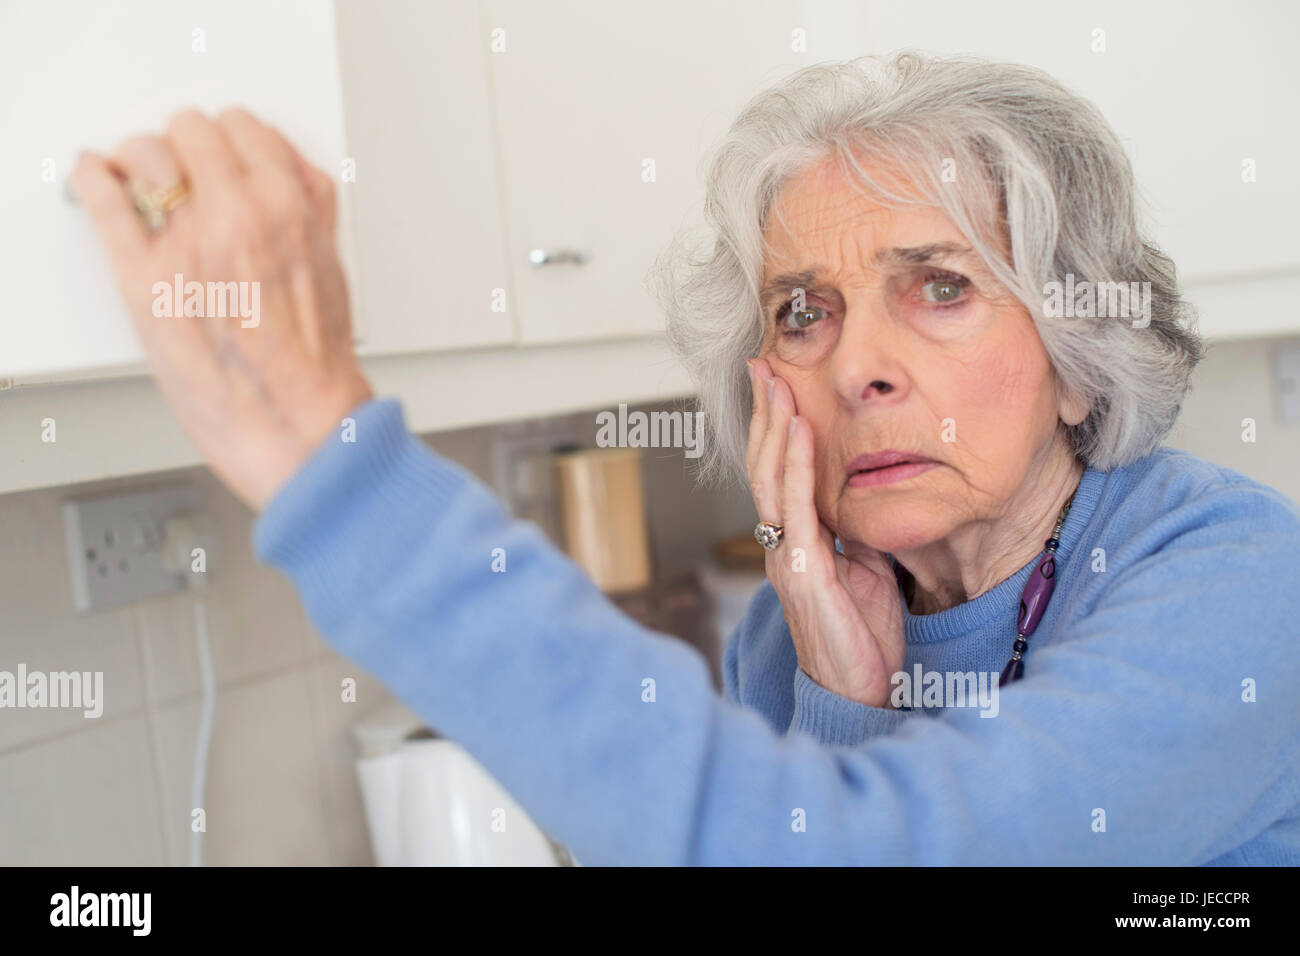 Forgetful Senior Woman With Dementia Looking In Cupboard - Stock Image